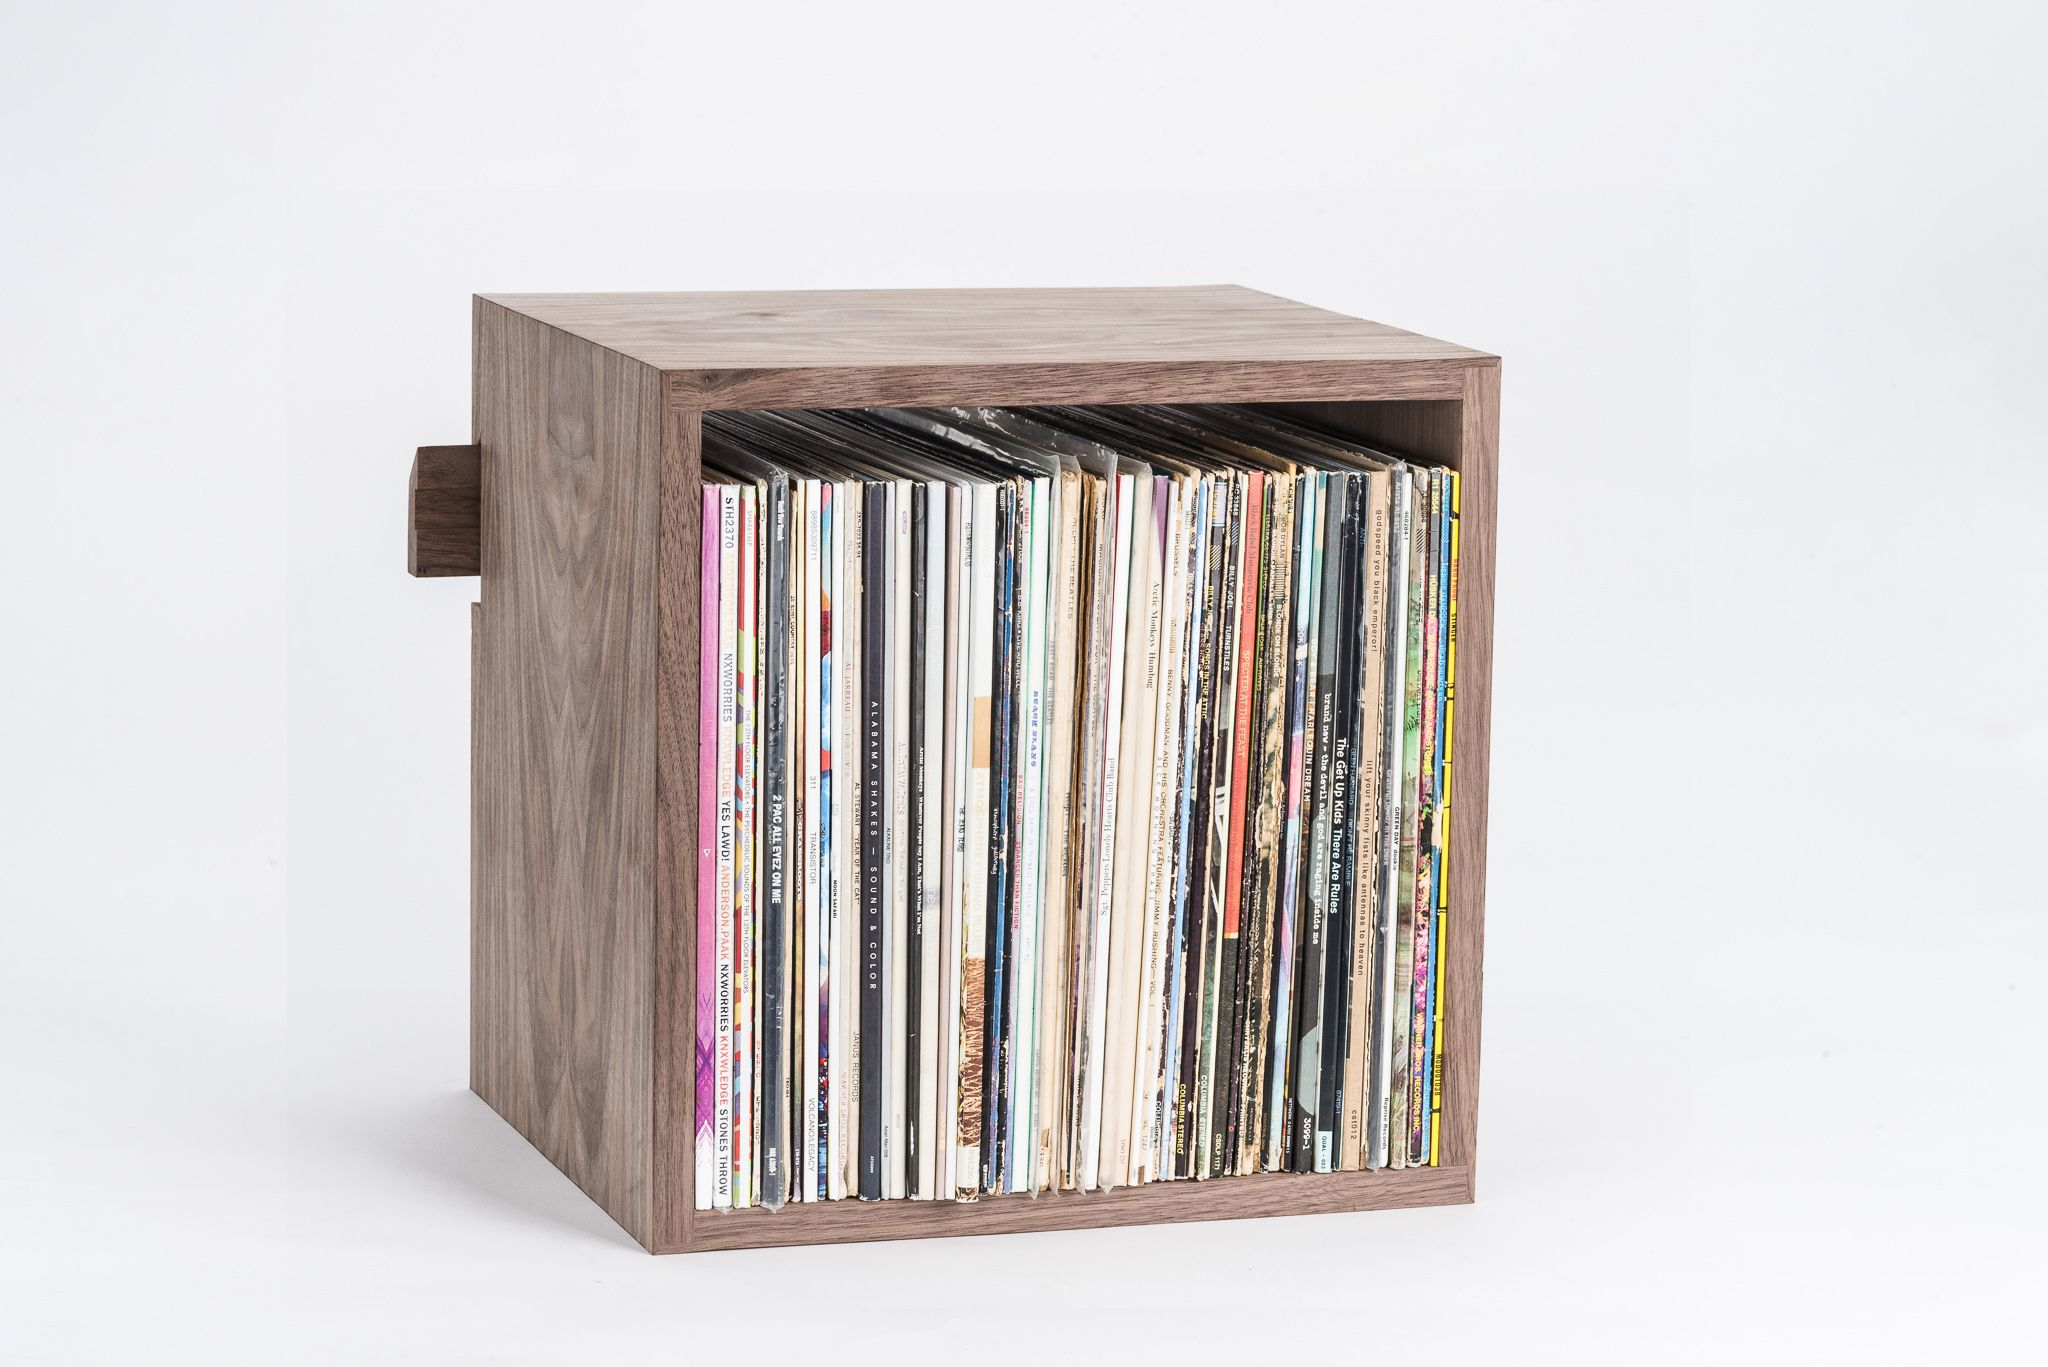 Pin On Wall Record Display And Storage